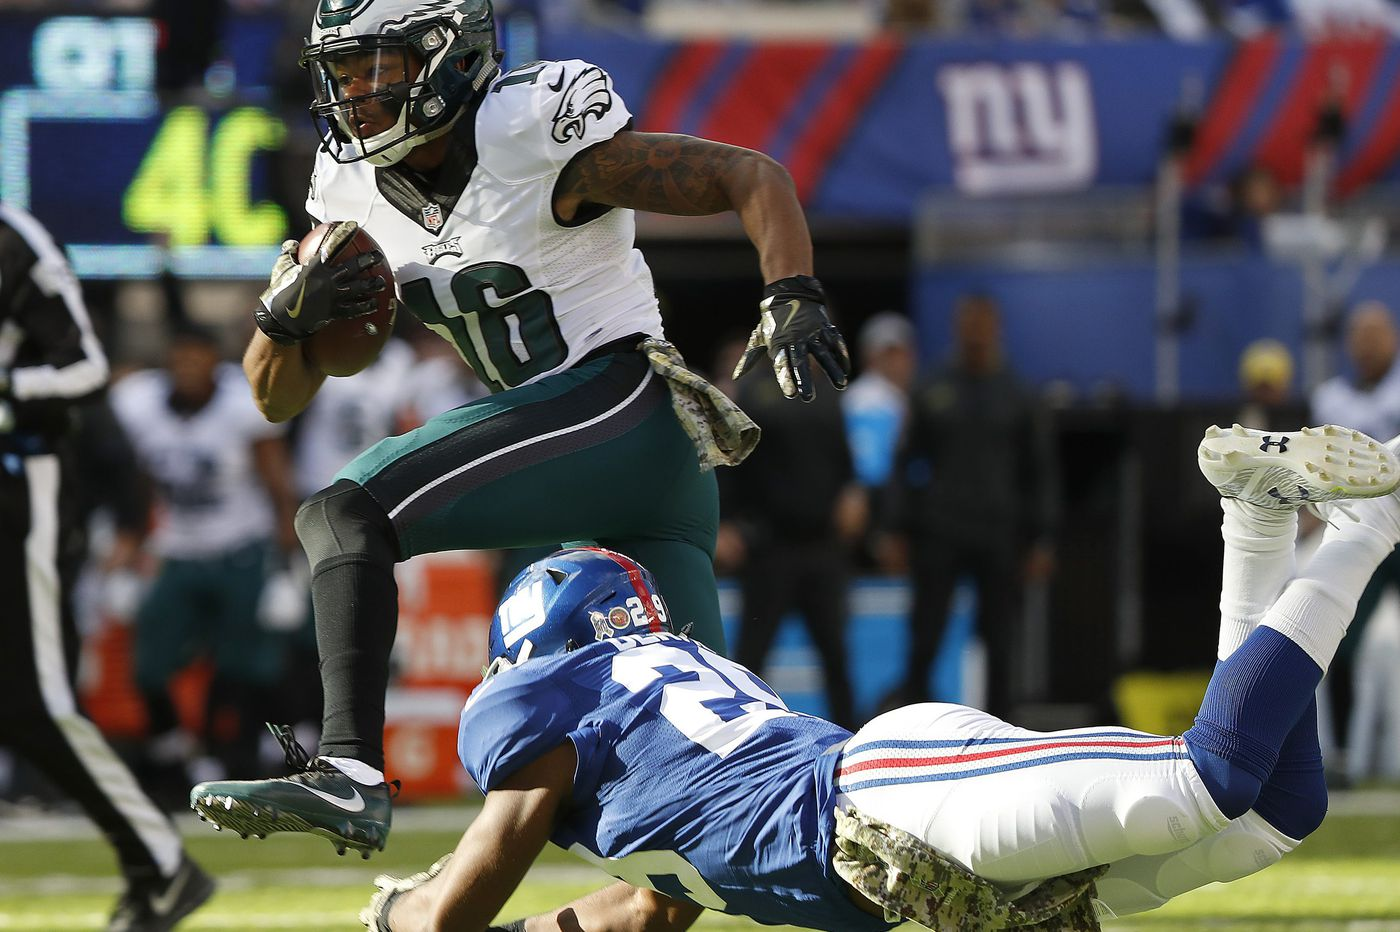 Bryce Treggs takes field for first time in Eagles training camp; Shelton Gibson still sidelined